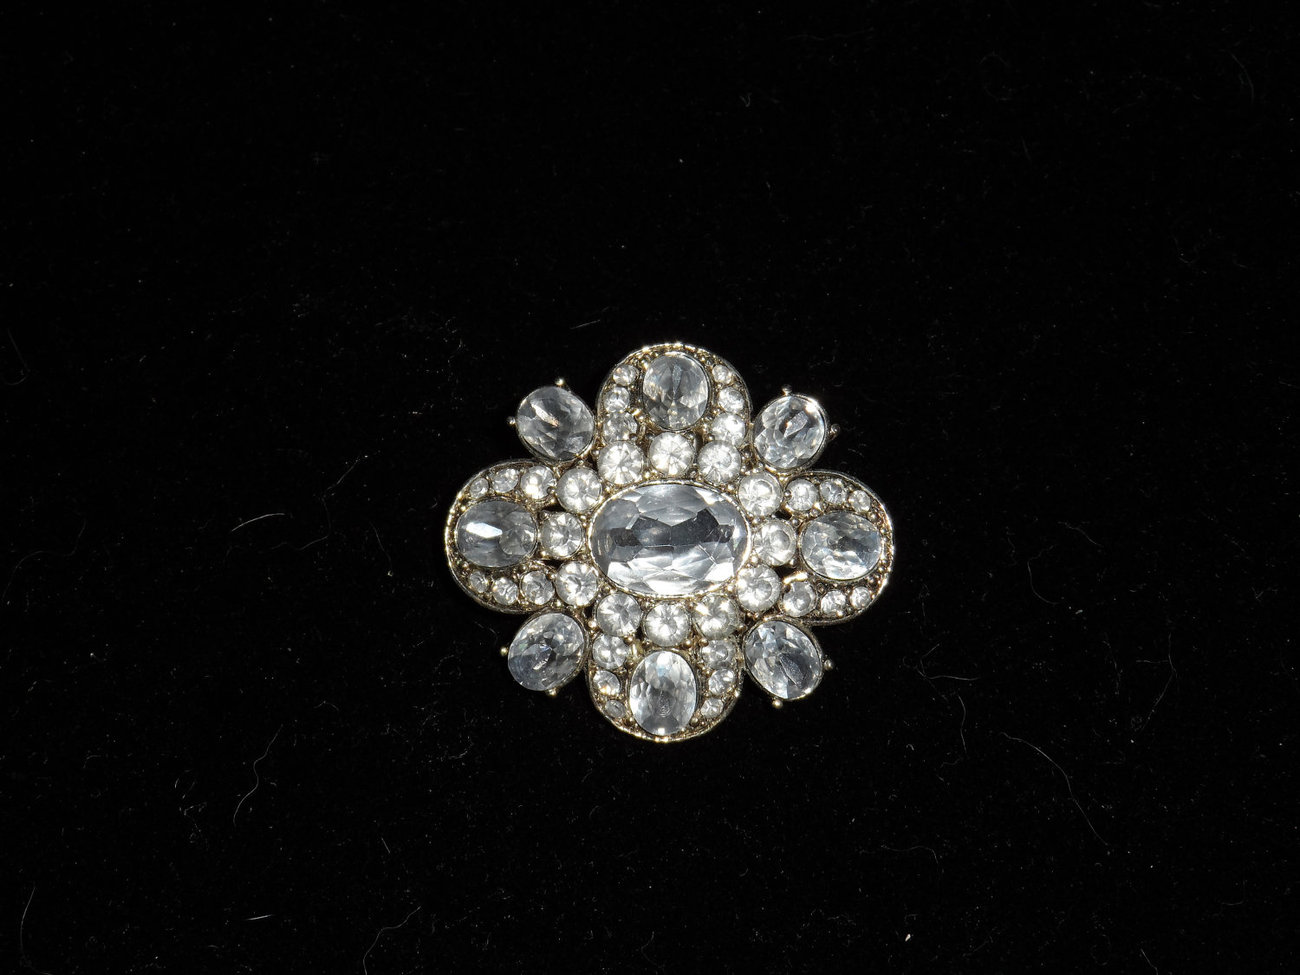 Brilliant Rhinestone Brooch/Pin, signed LC